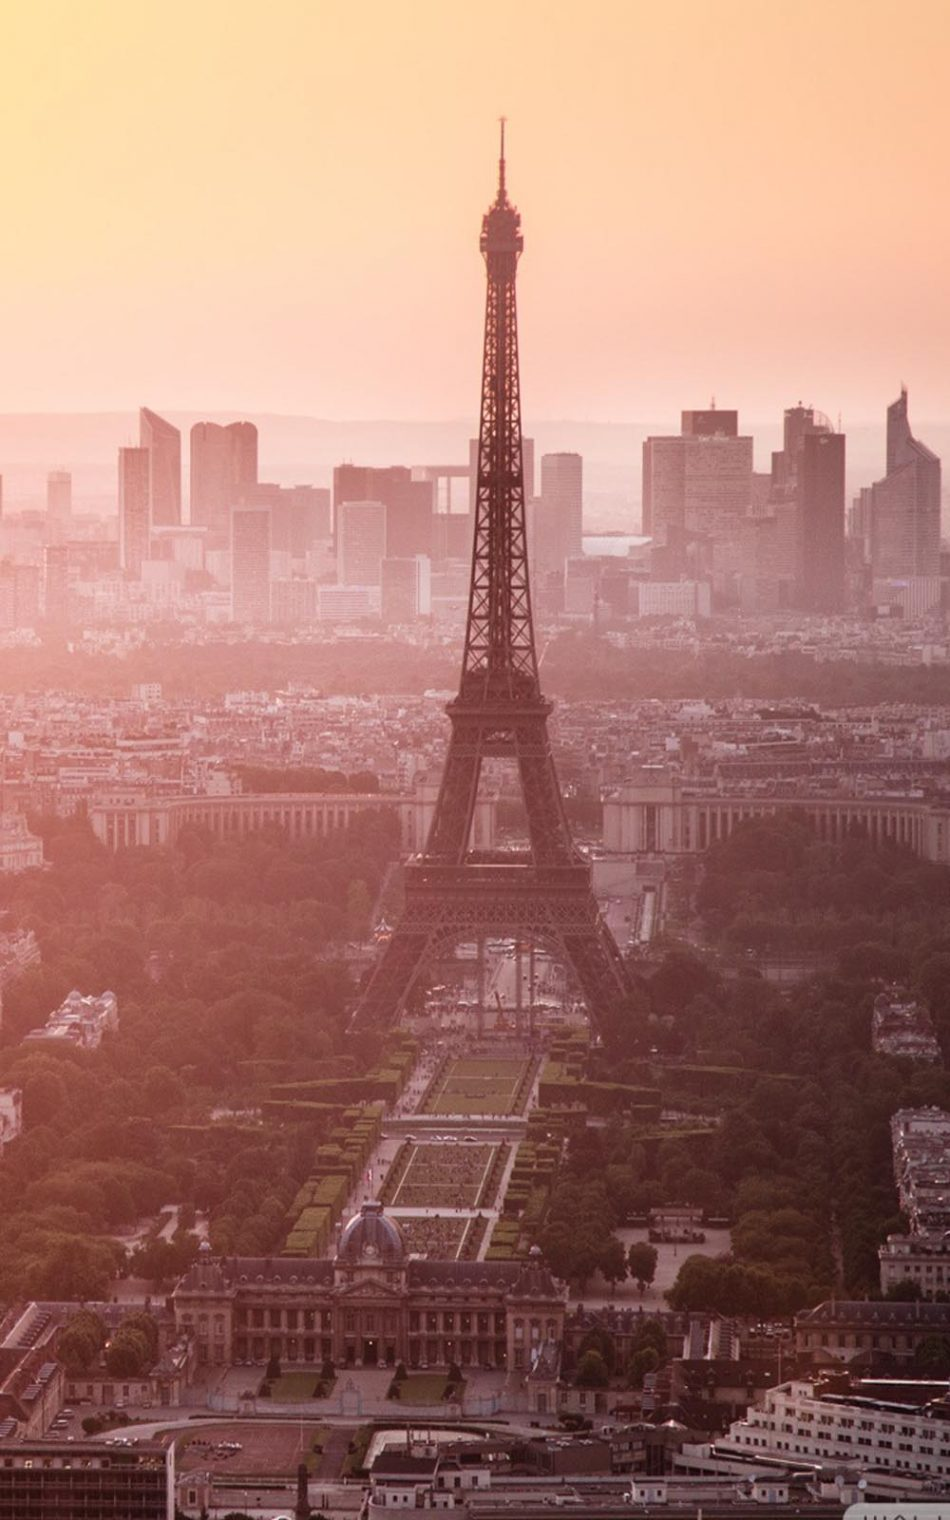 Morning View of Eiffel Tower